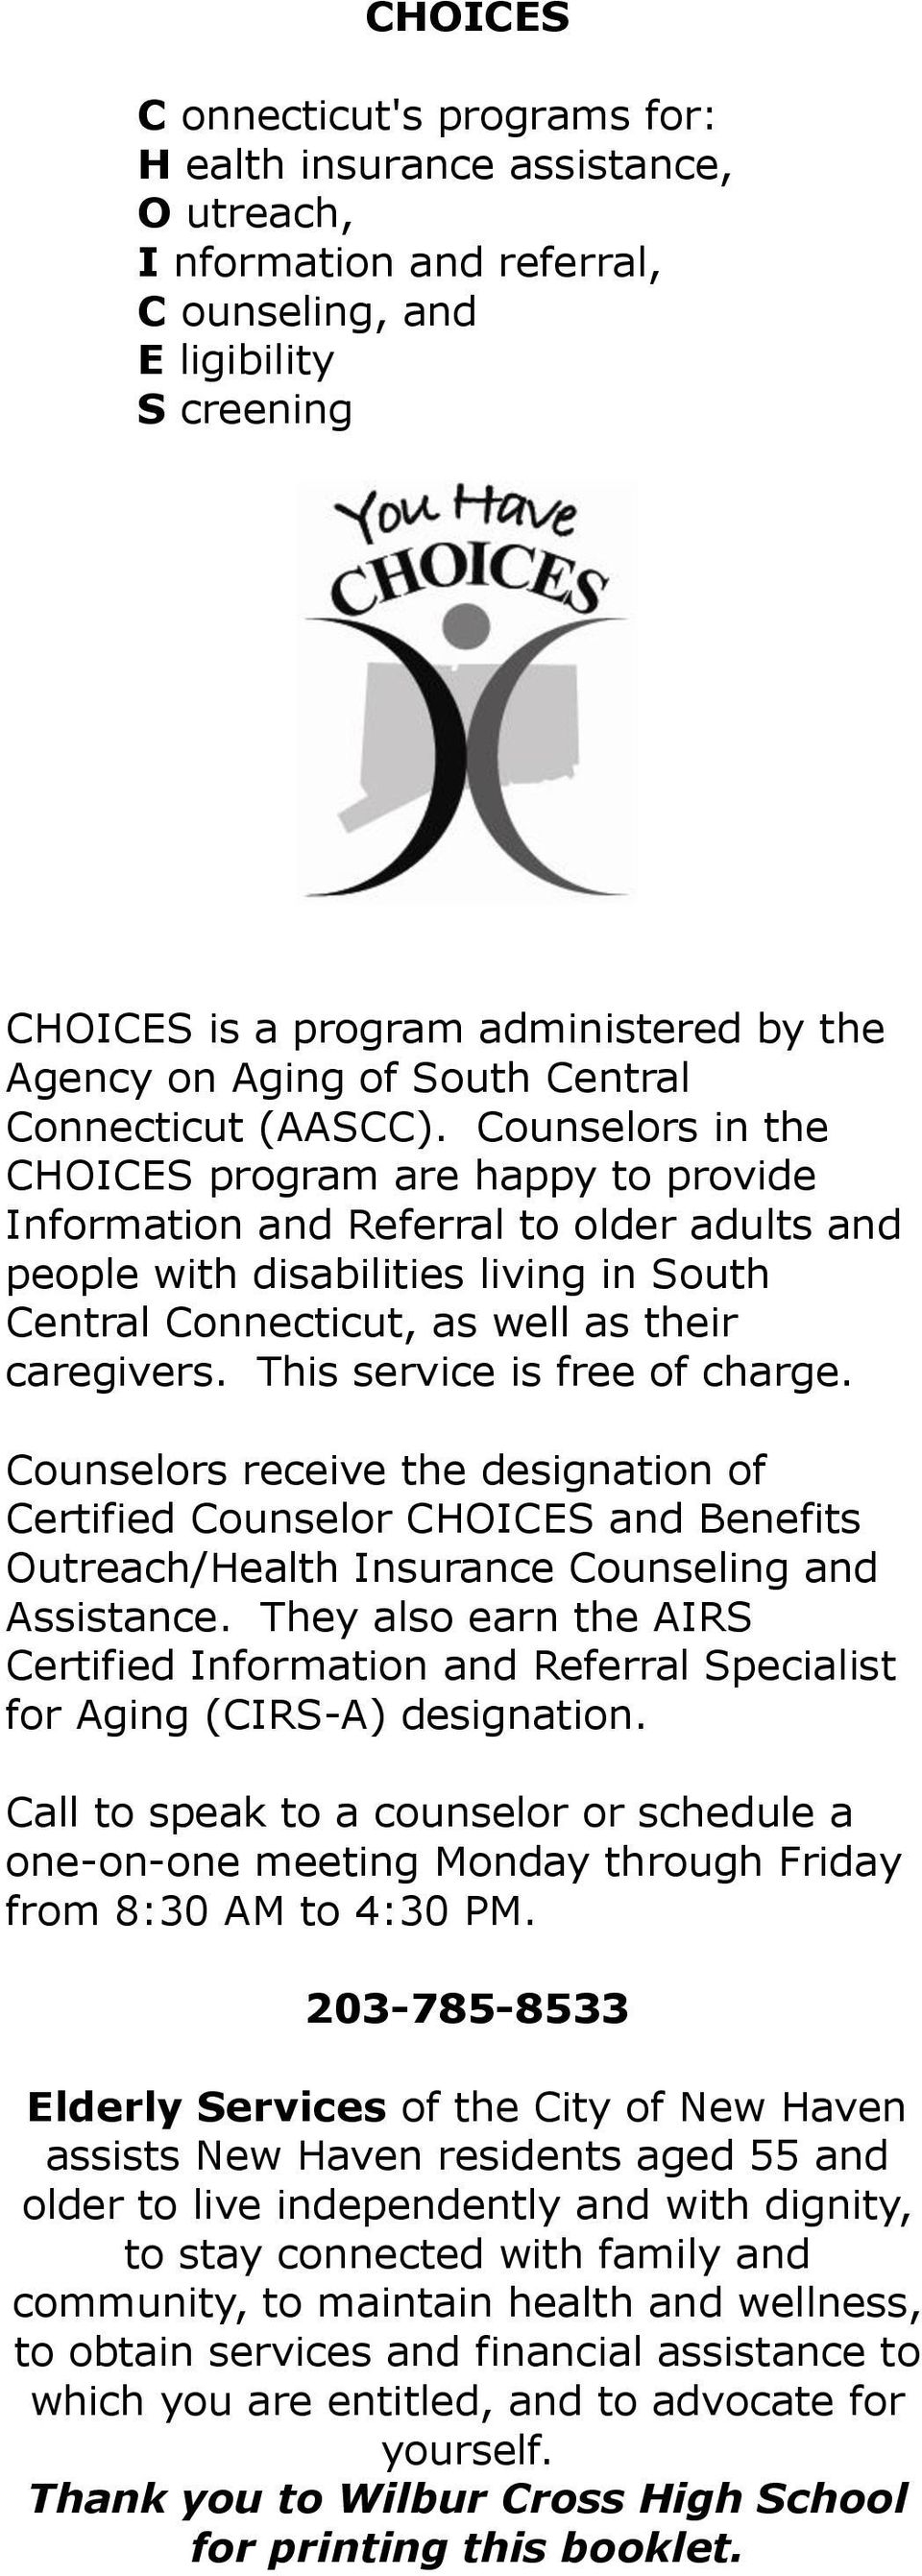 Counselors in the CHOICES program are happy to provide Information and Referral to older adults and people with disabilities living in South Central Connecticut, as well as their caregivers.